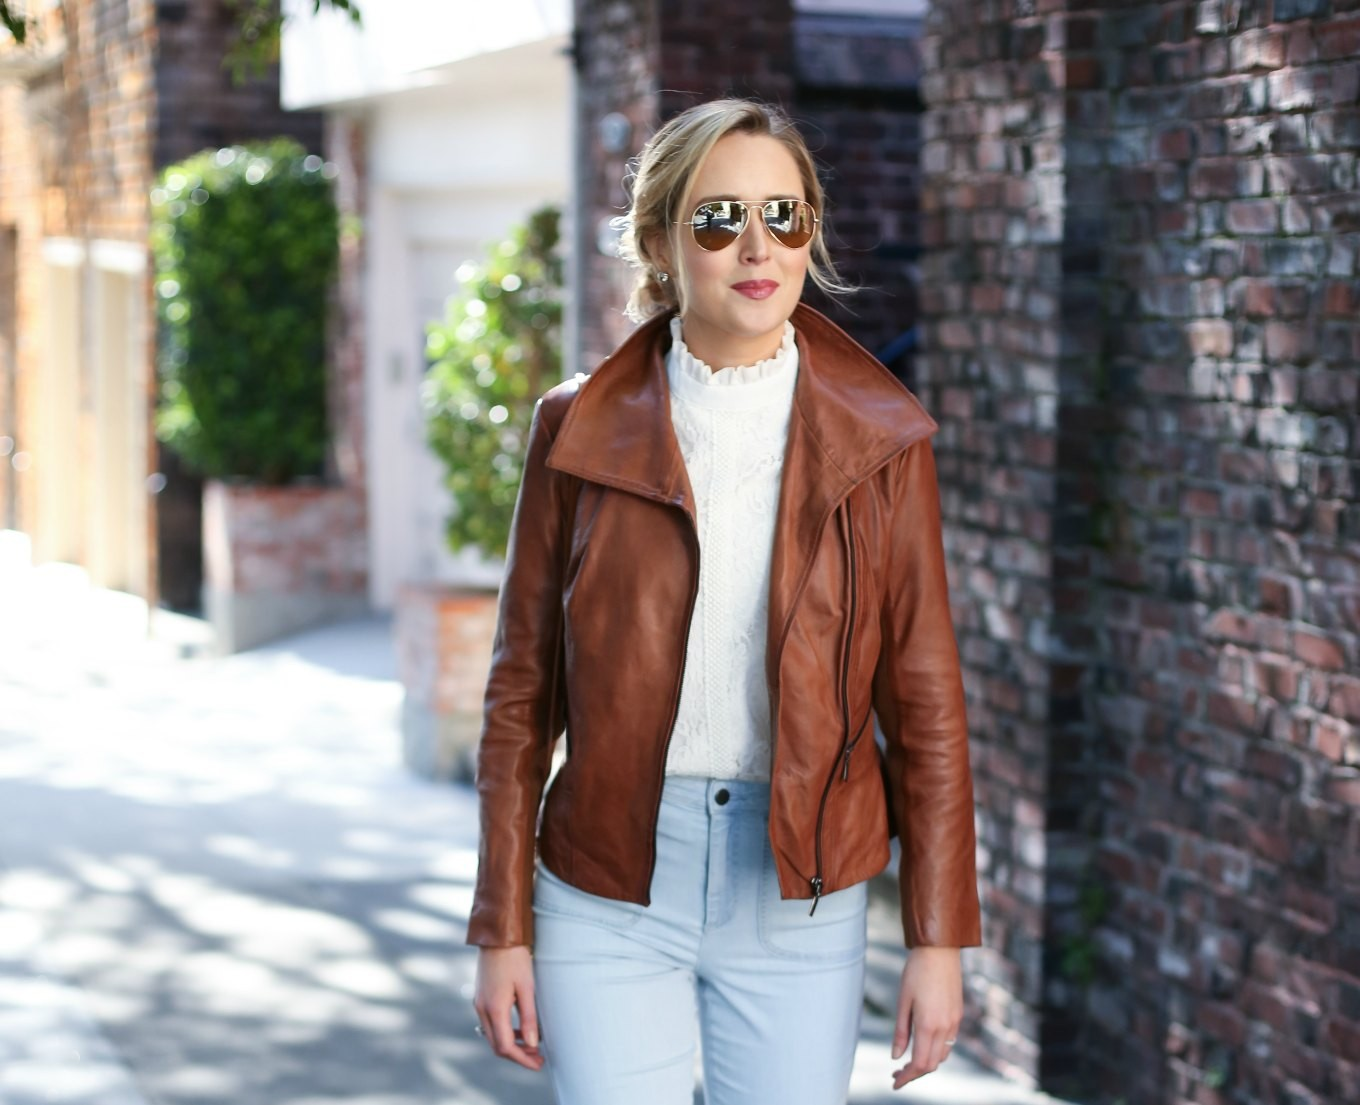 lace-mock-neck-top-alice-olivia-braid-belt-flare-leg-light-wash-jeans-brown-leather-jacket-messy-bun-san-francisco-style-fashion-blog-mary-orton2-680x5532x